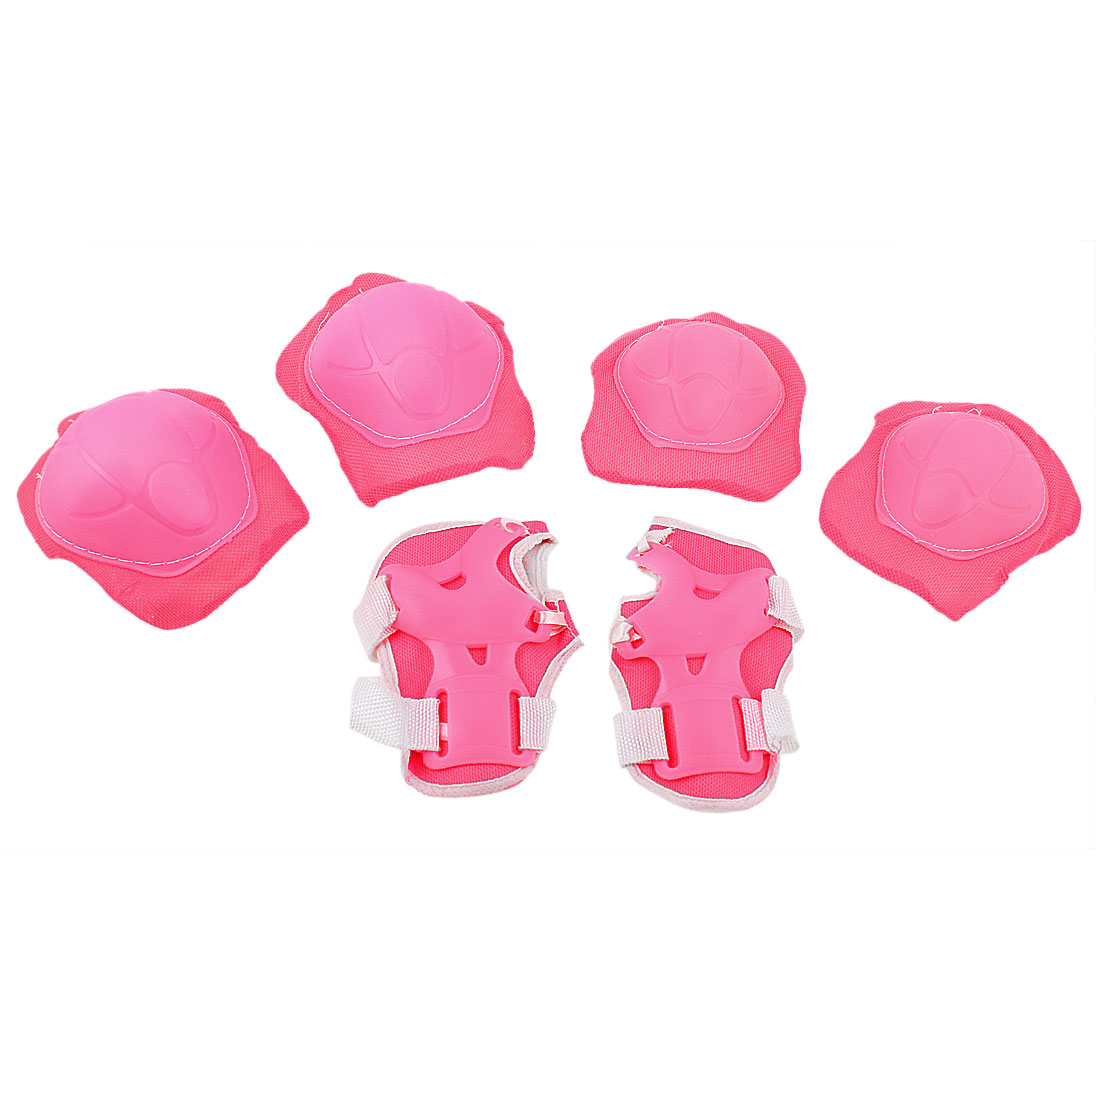 6pcs Kids Elbow Knee Pad Palm Wrist Guard Set Outdoor Sports Protective Gear